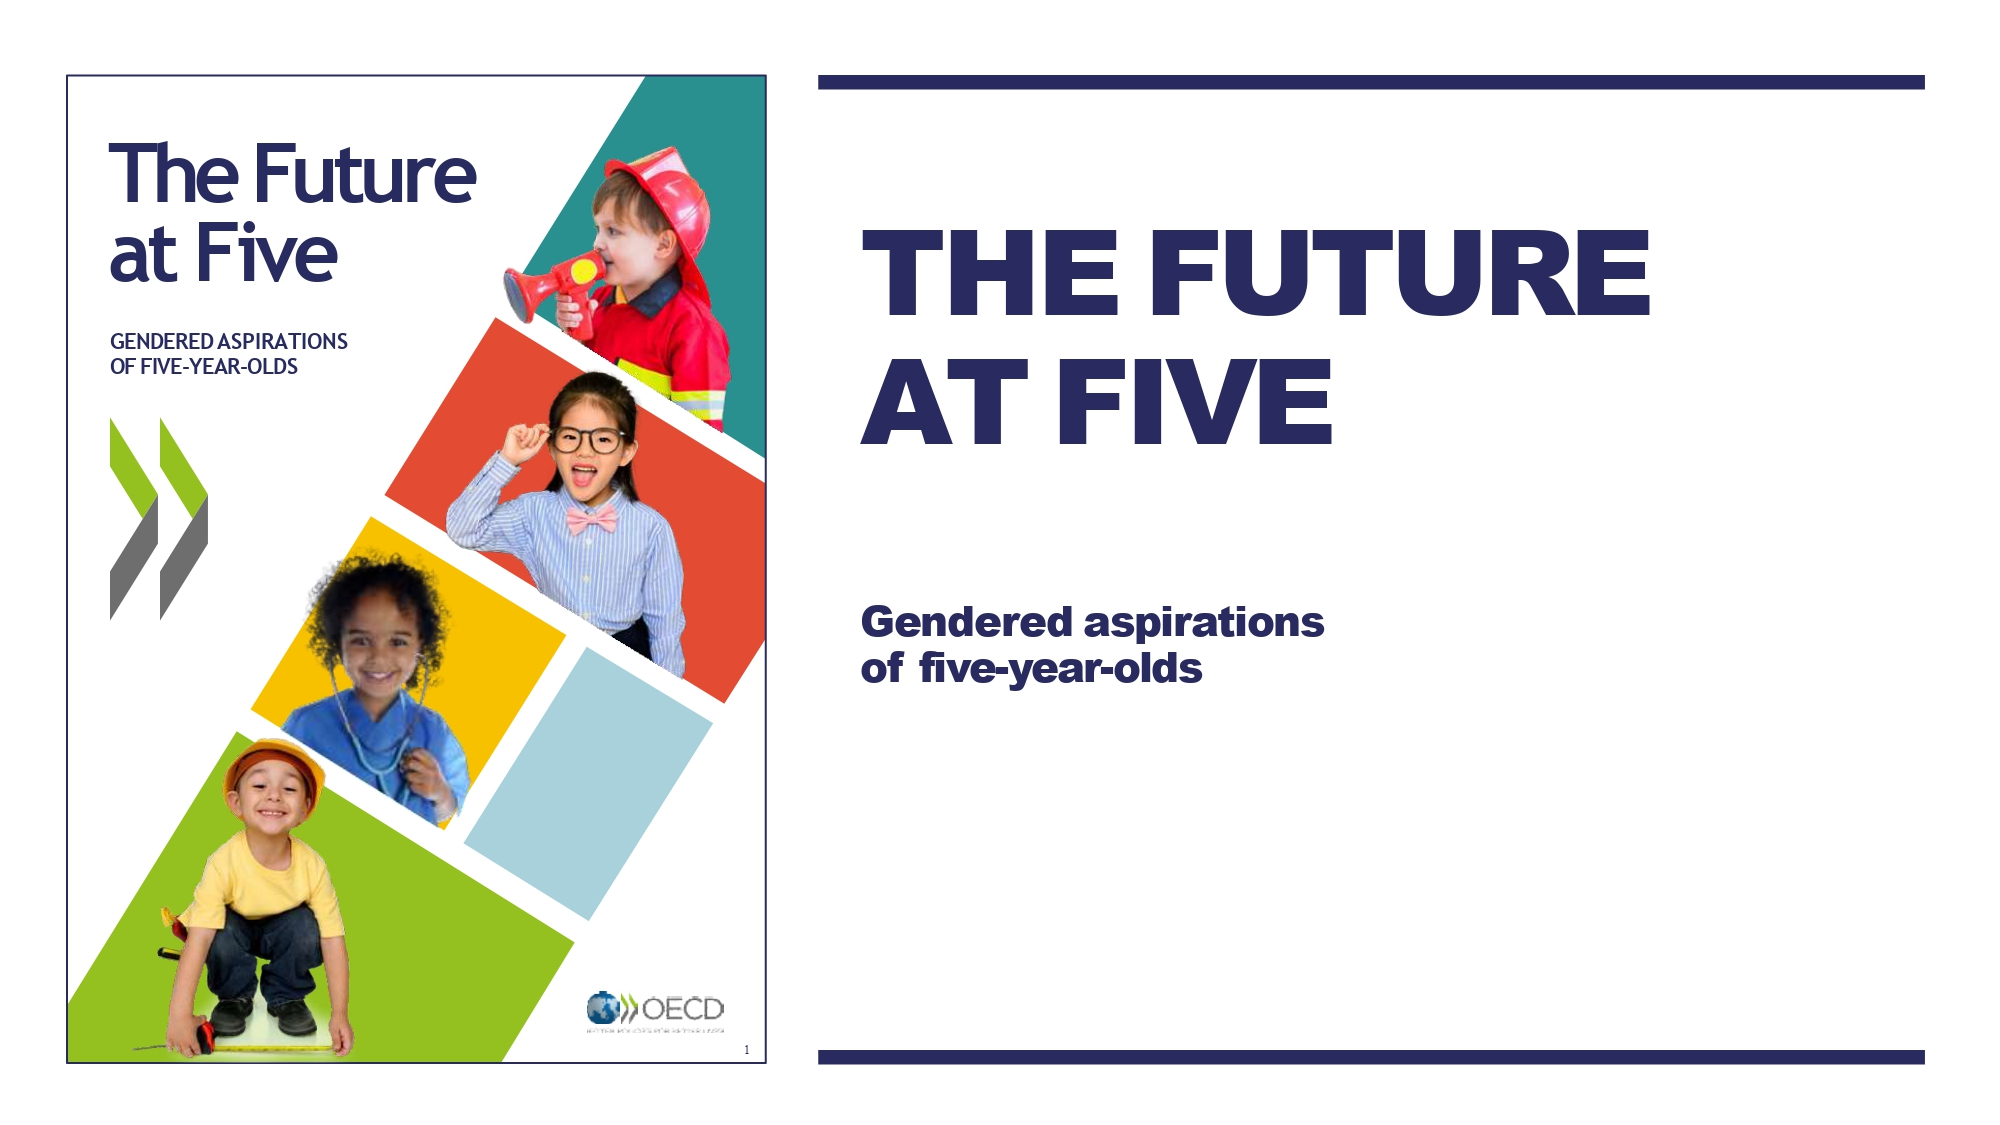 The future at five: How do gender stereotypes affect five-year-olds' ideas about their future?